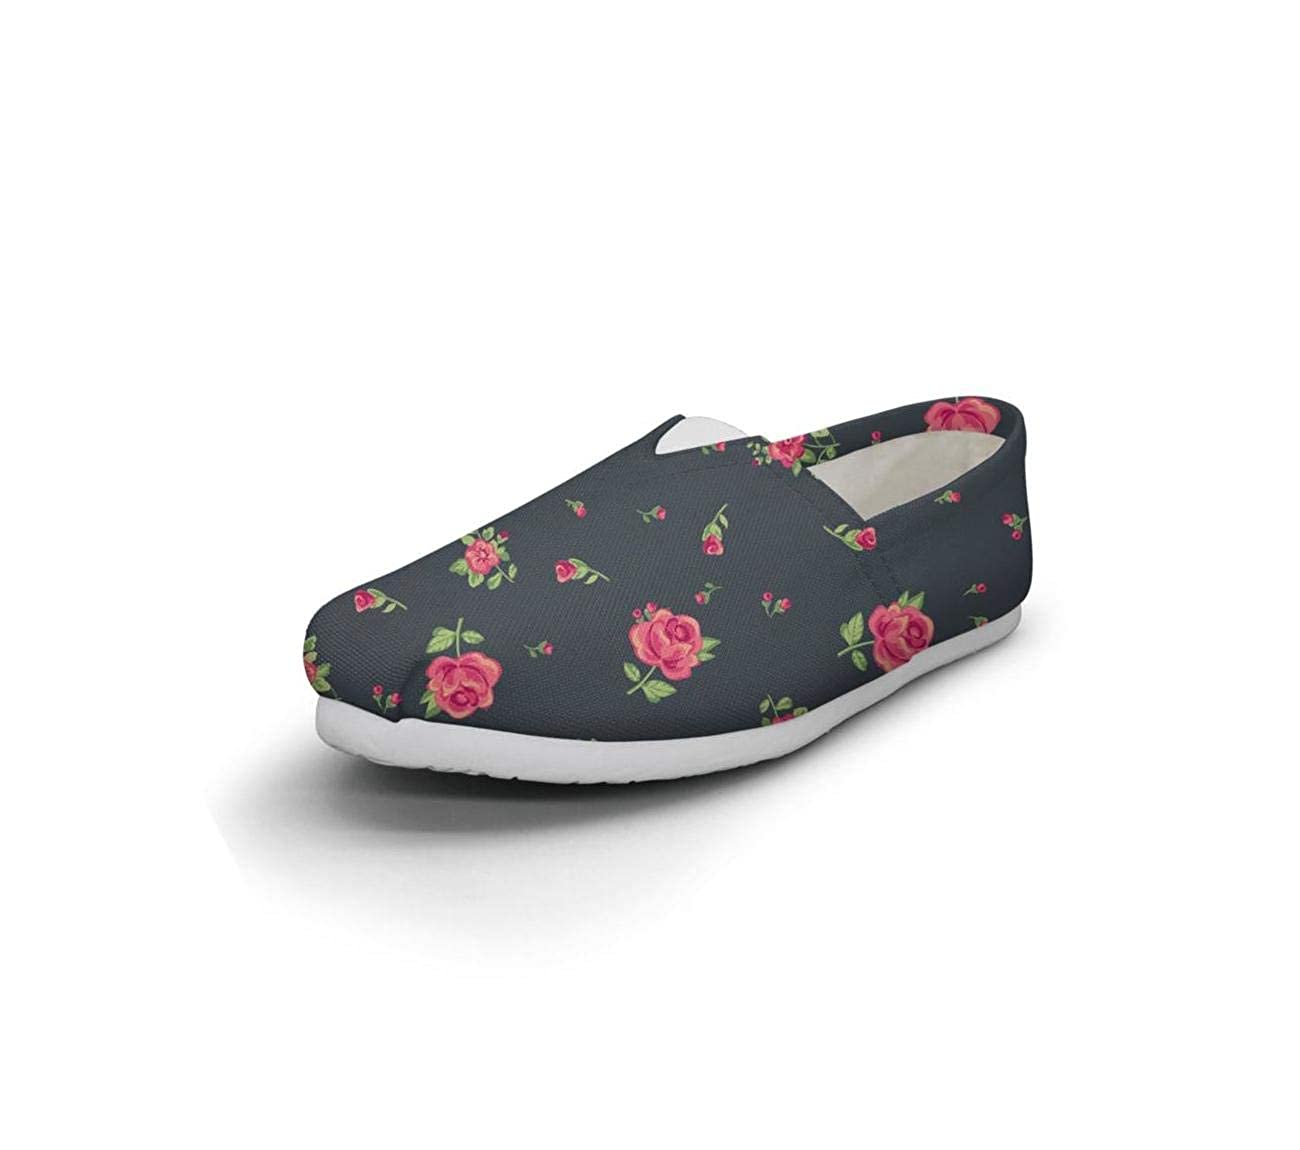 White floral Fairytale Princess Womens Comfort Flat Boat Shoes Ladies Loafer Shoes